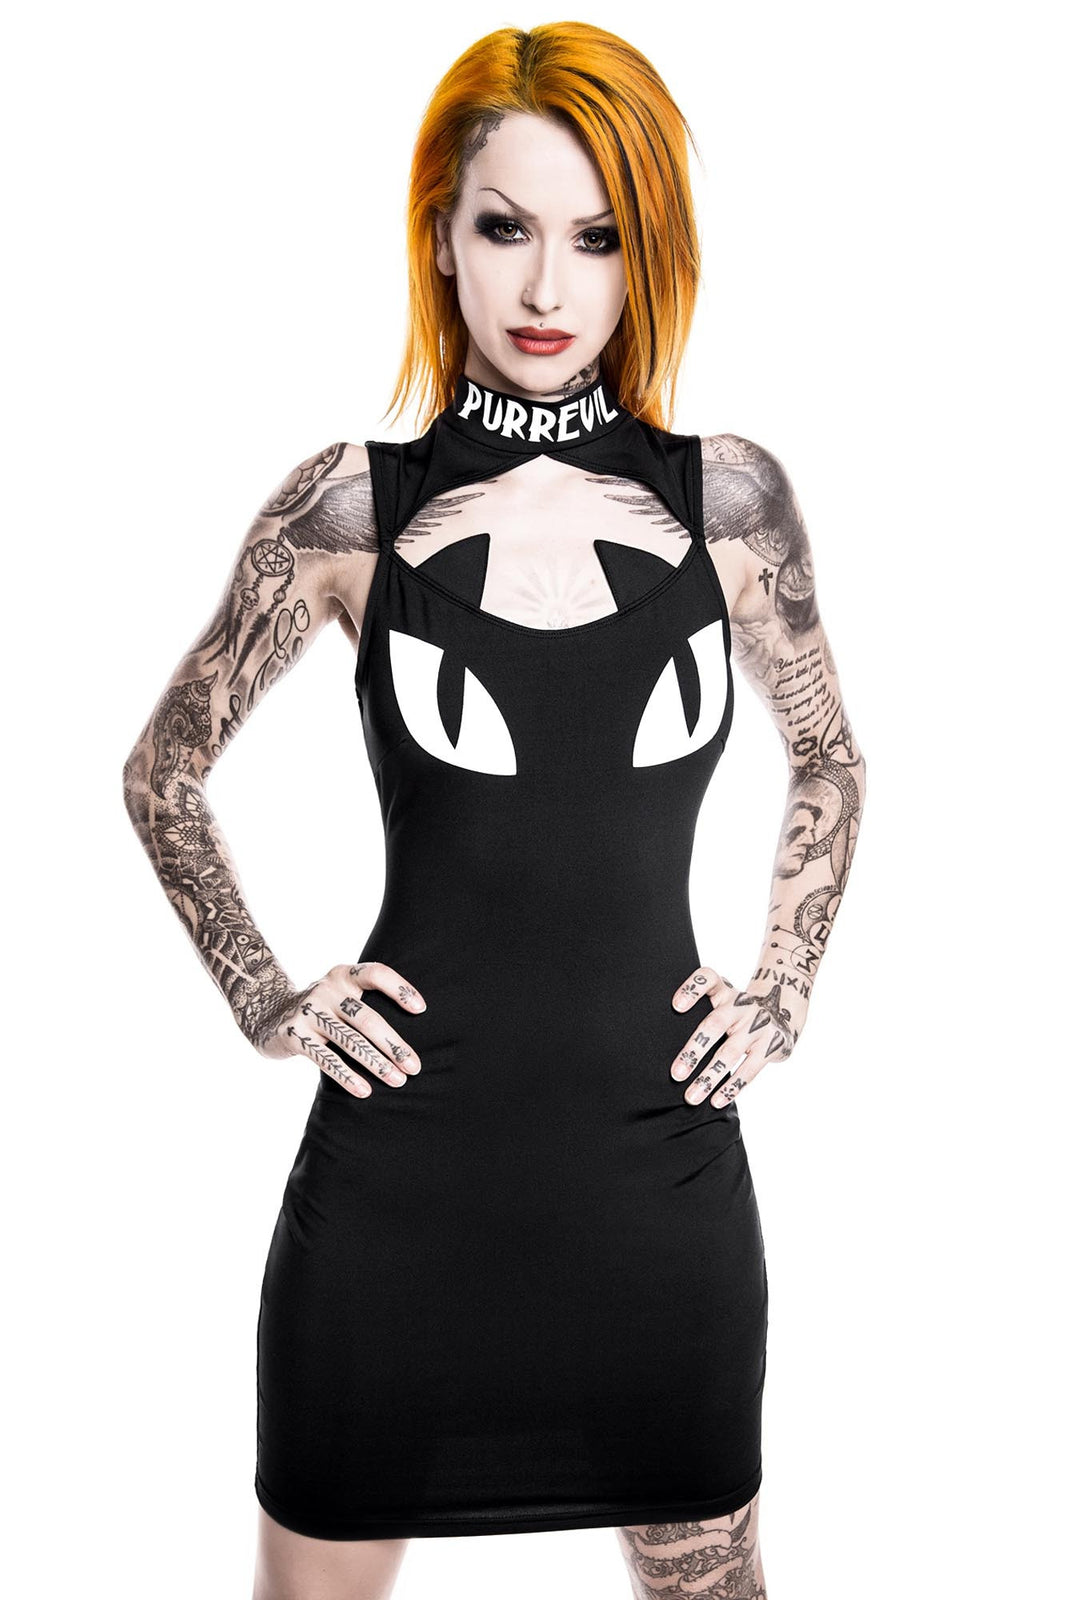 Model in KILLSTAR Purr Evil Black Bodycon Goth Dress